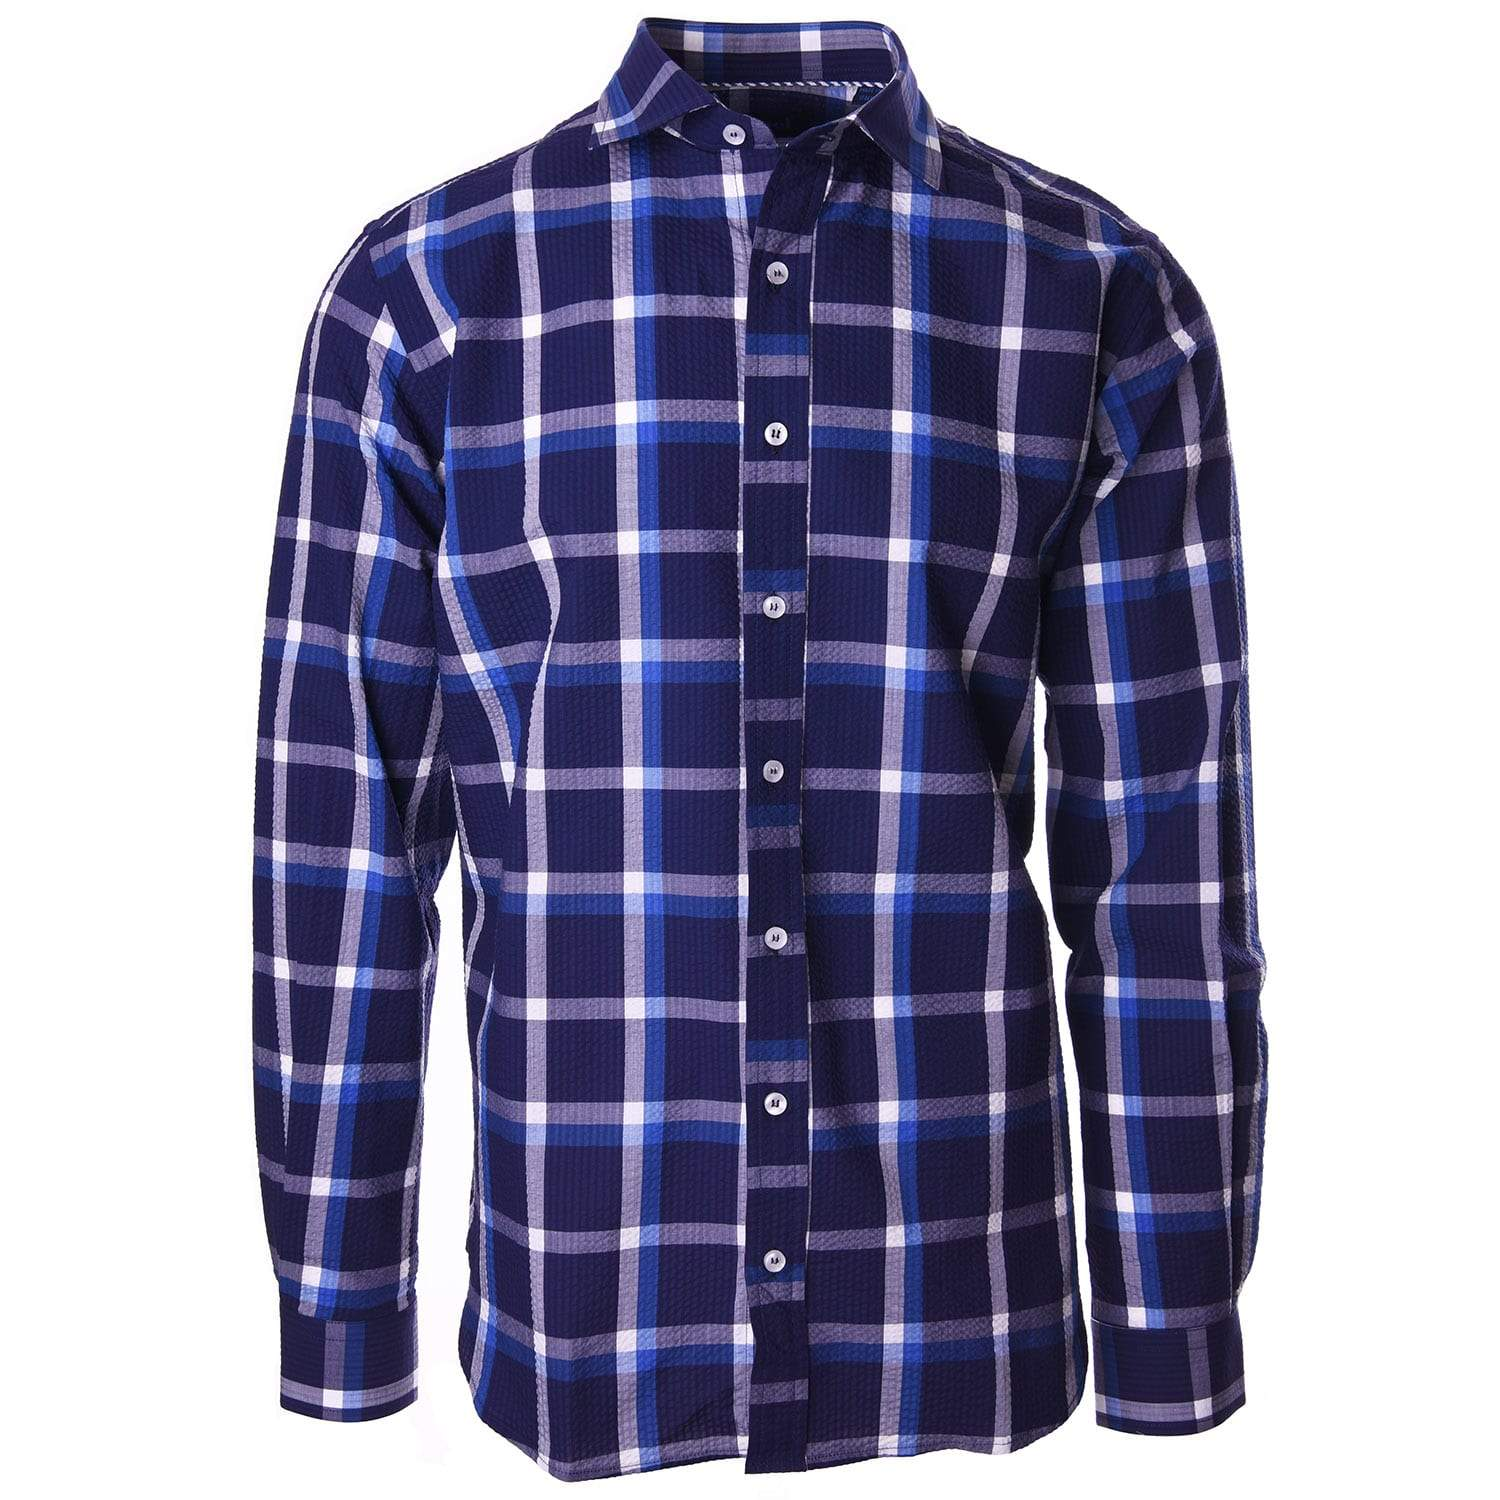 Carroll Navy and White Seersucker Plaid - Haspel Clothing